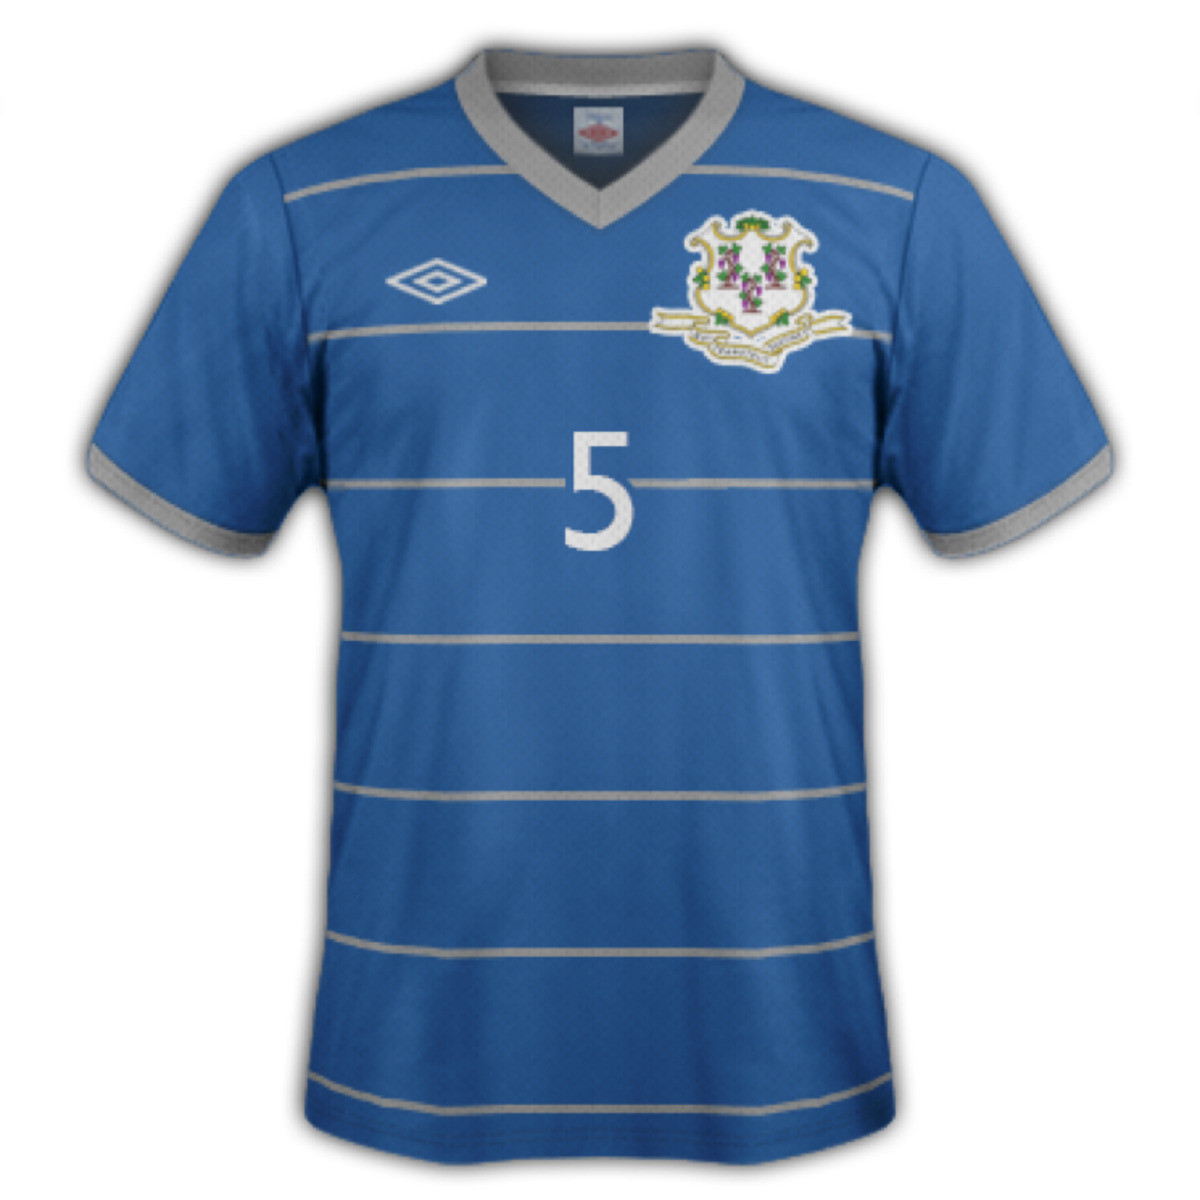 015 - Connecticut Away